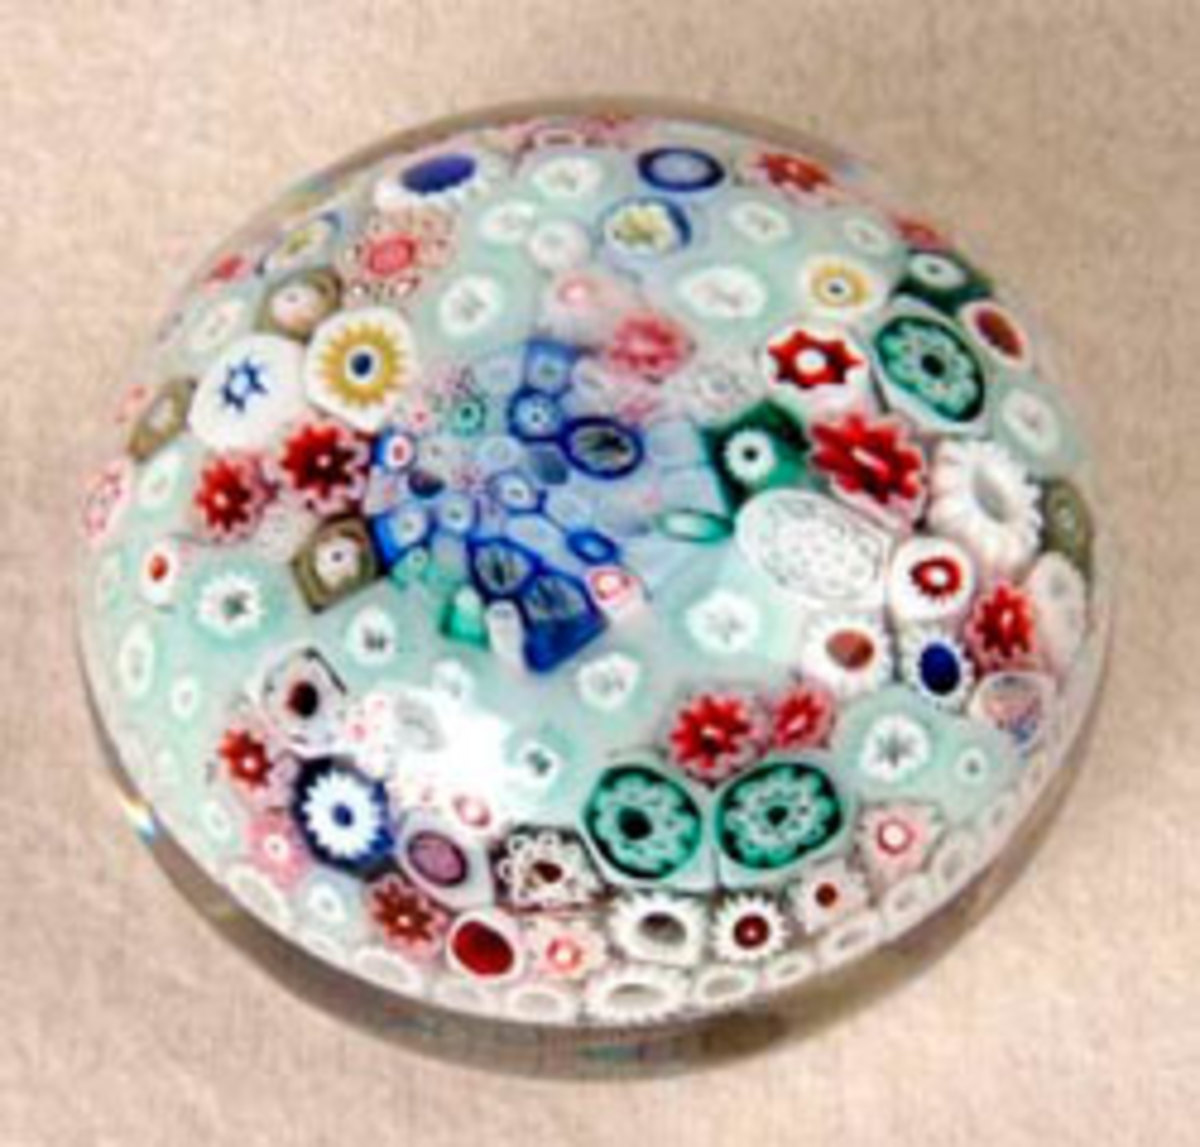 A rare, antique baccus concentric millefiori paperweight sold at auction for $4200 US.